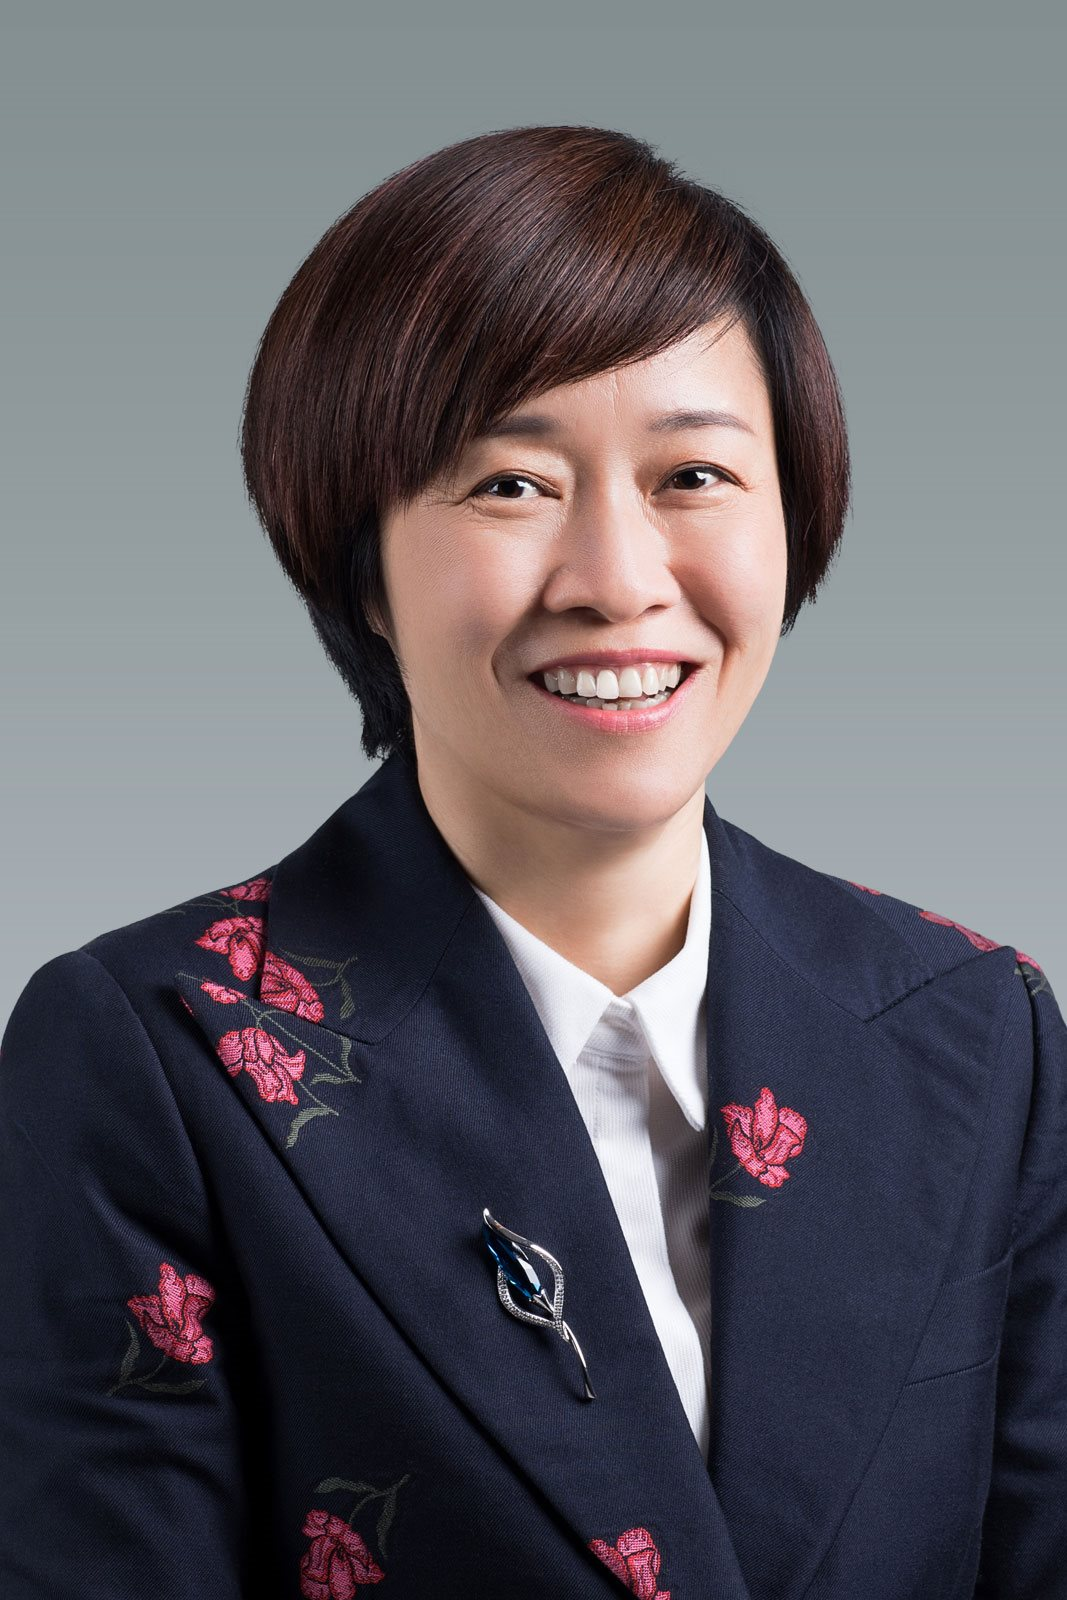 Ms. Chen Lifang (Catherine Chen), Director, President of the Public Affairs and Communications Dept